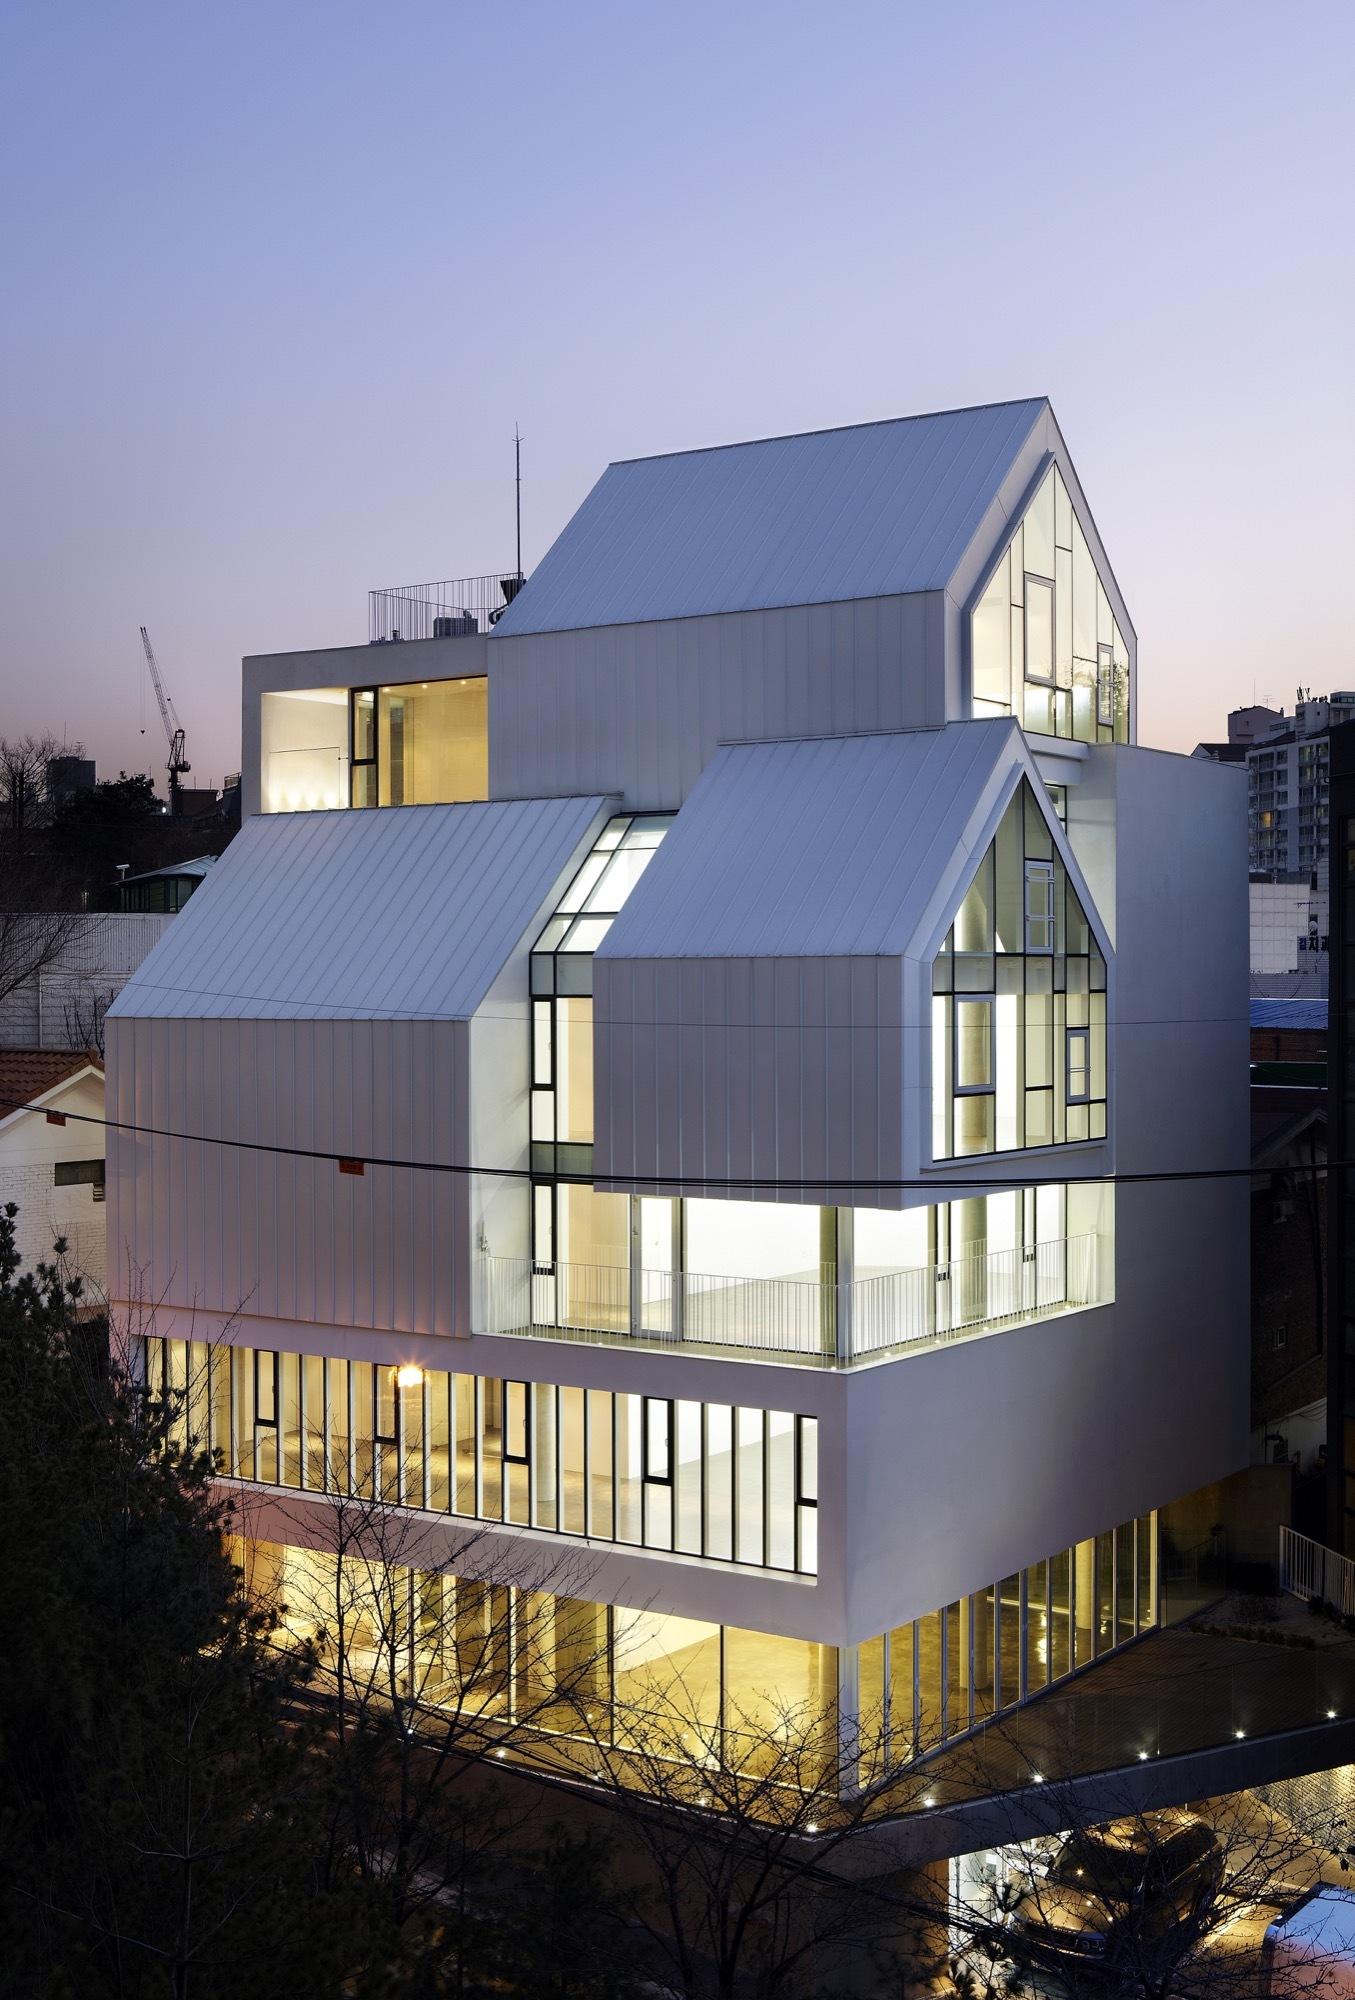 G 1 House Design: Gallery Of The March Rabbit / L'EAU Design